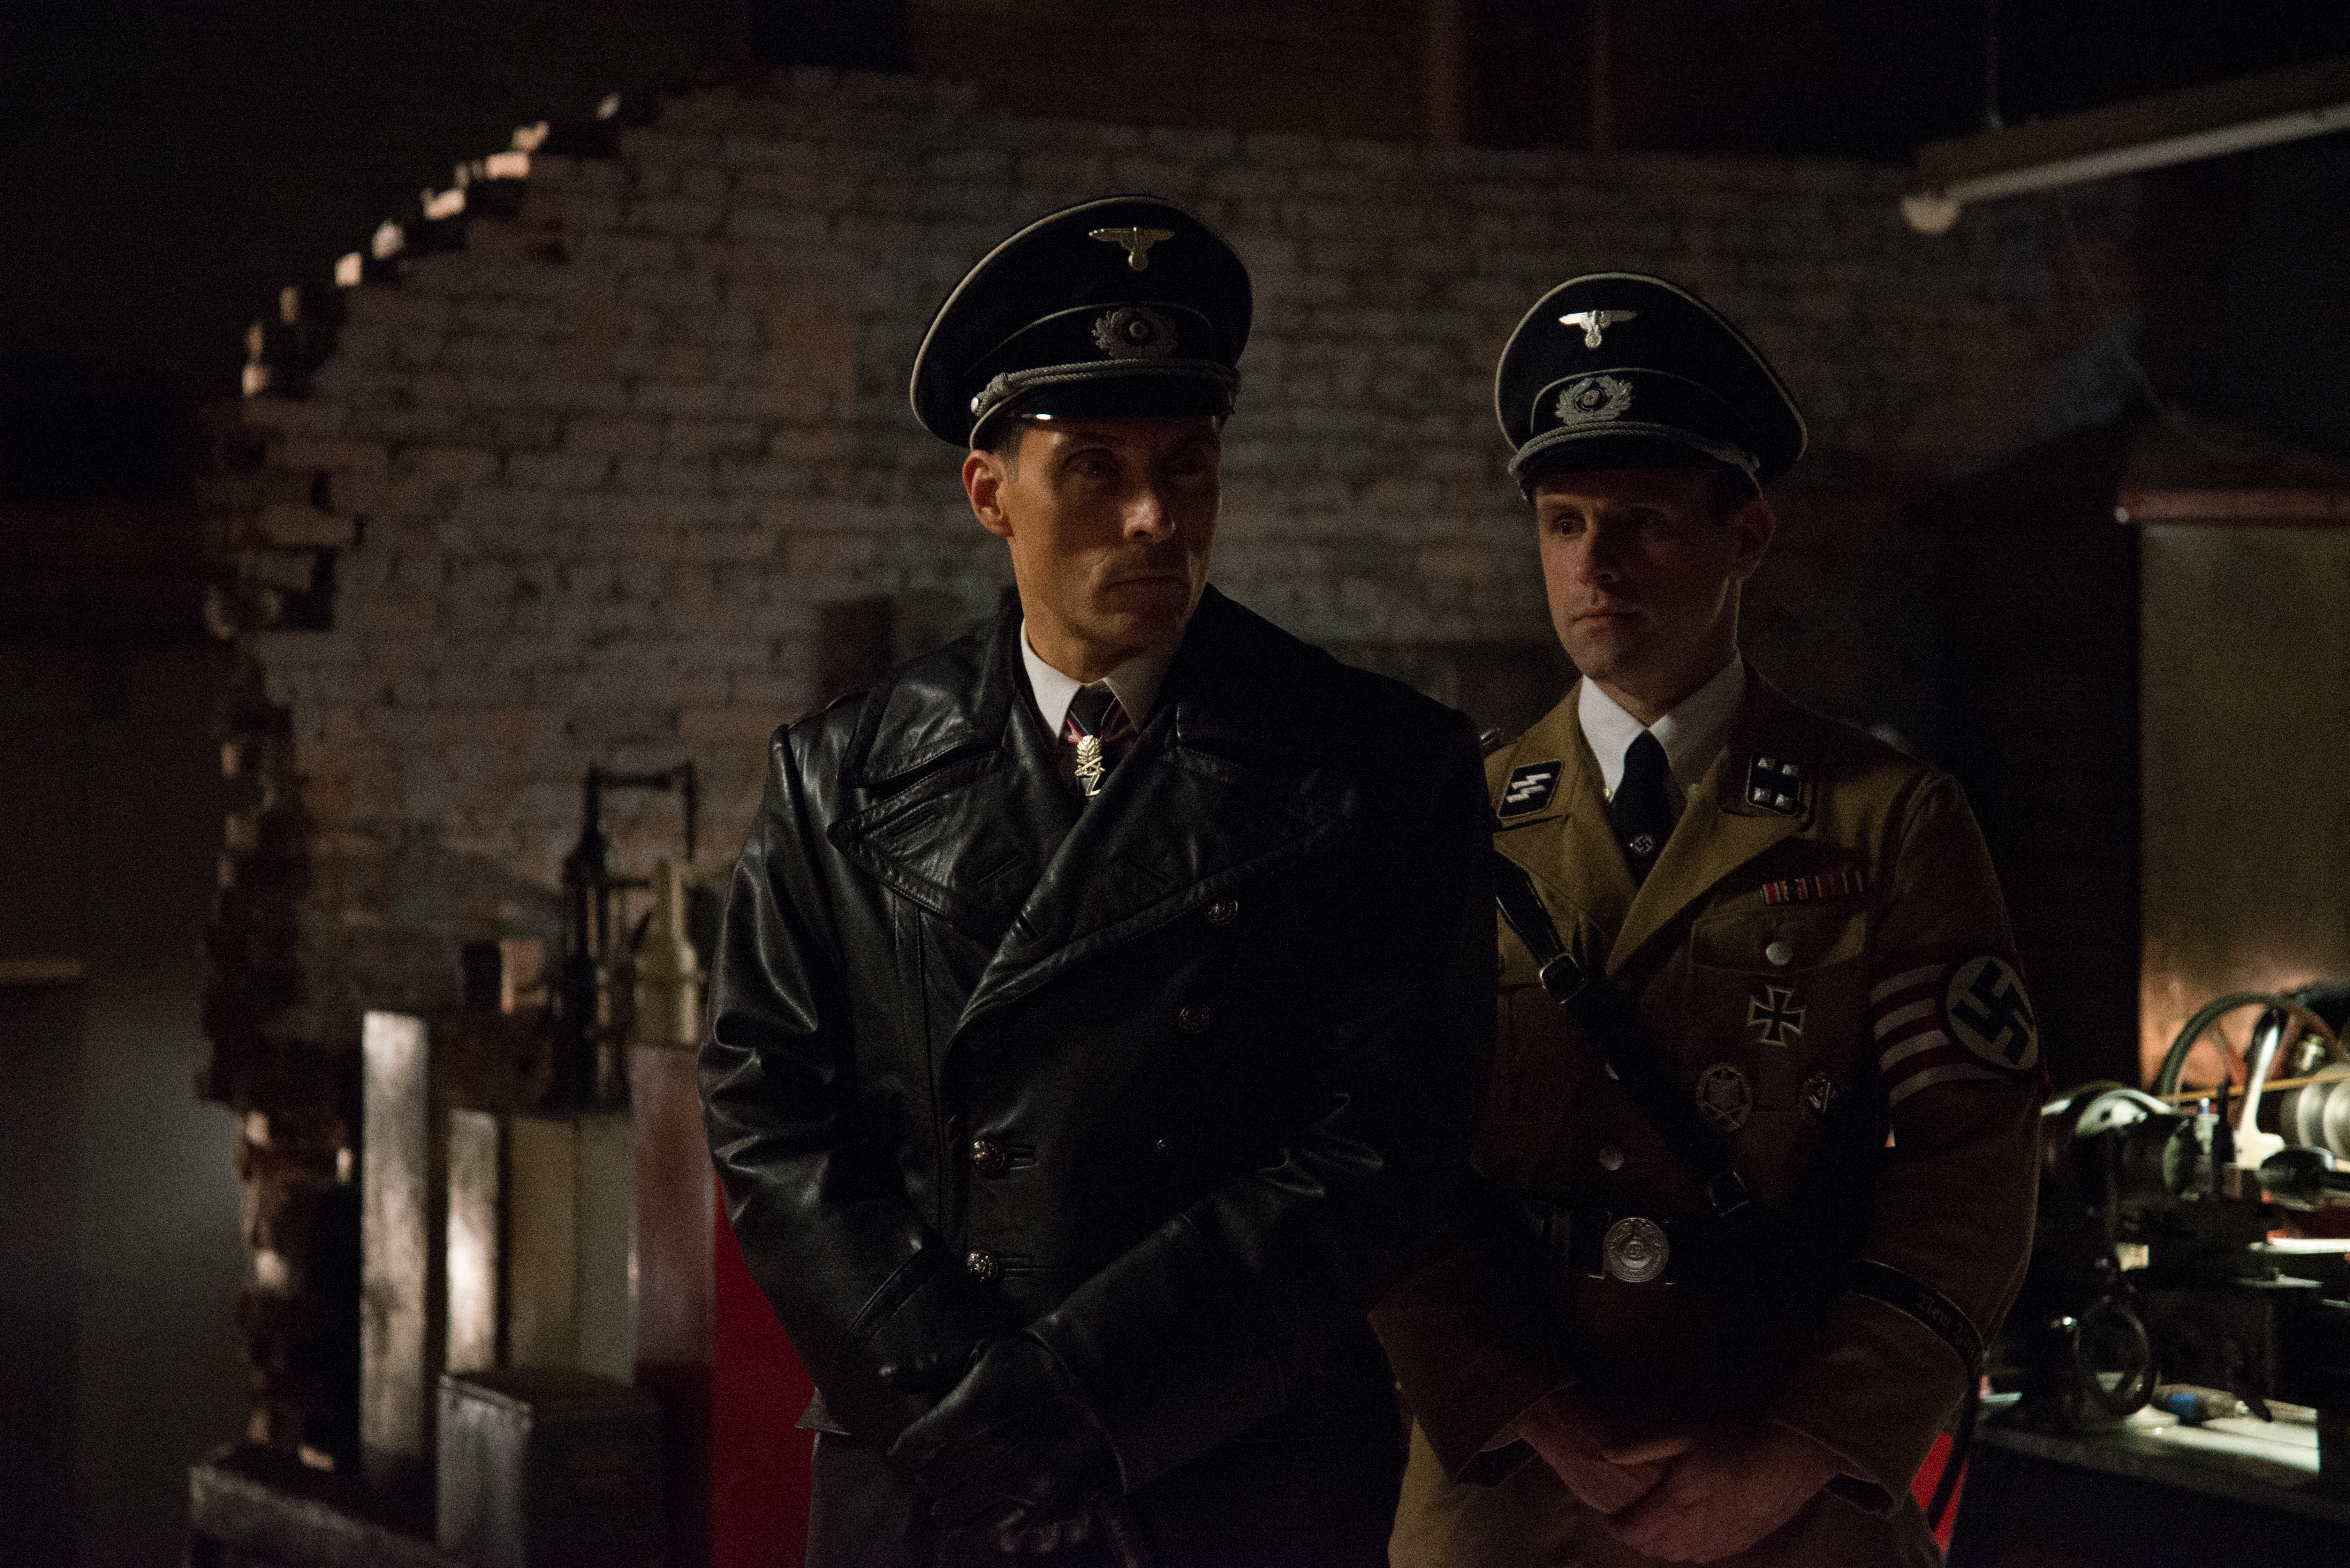 Amazon Prime Video's The Man in the High Castle